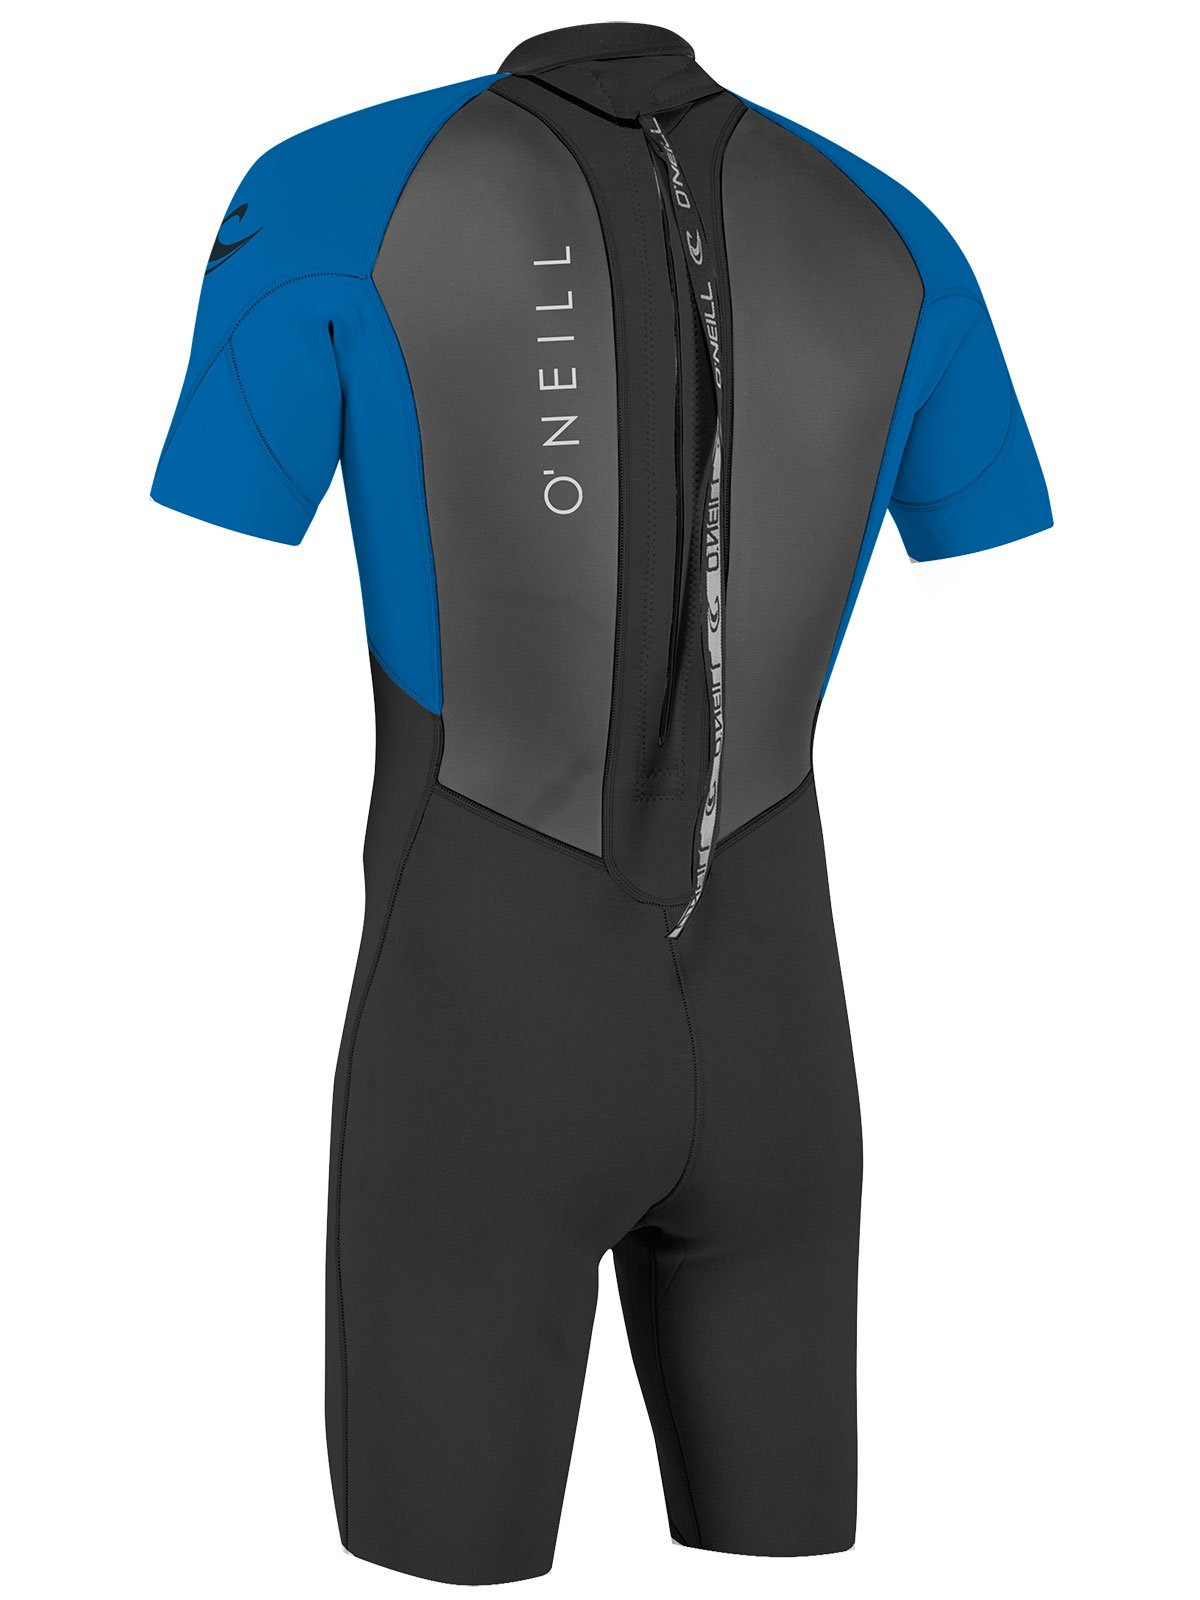 O'Neill Youth Reactor-2 2mm Back Zip Short Sleeve Spring Wetsuit, Black/Ocean, 4 by O'Neill Wetsuits (Image #3)